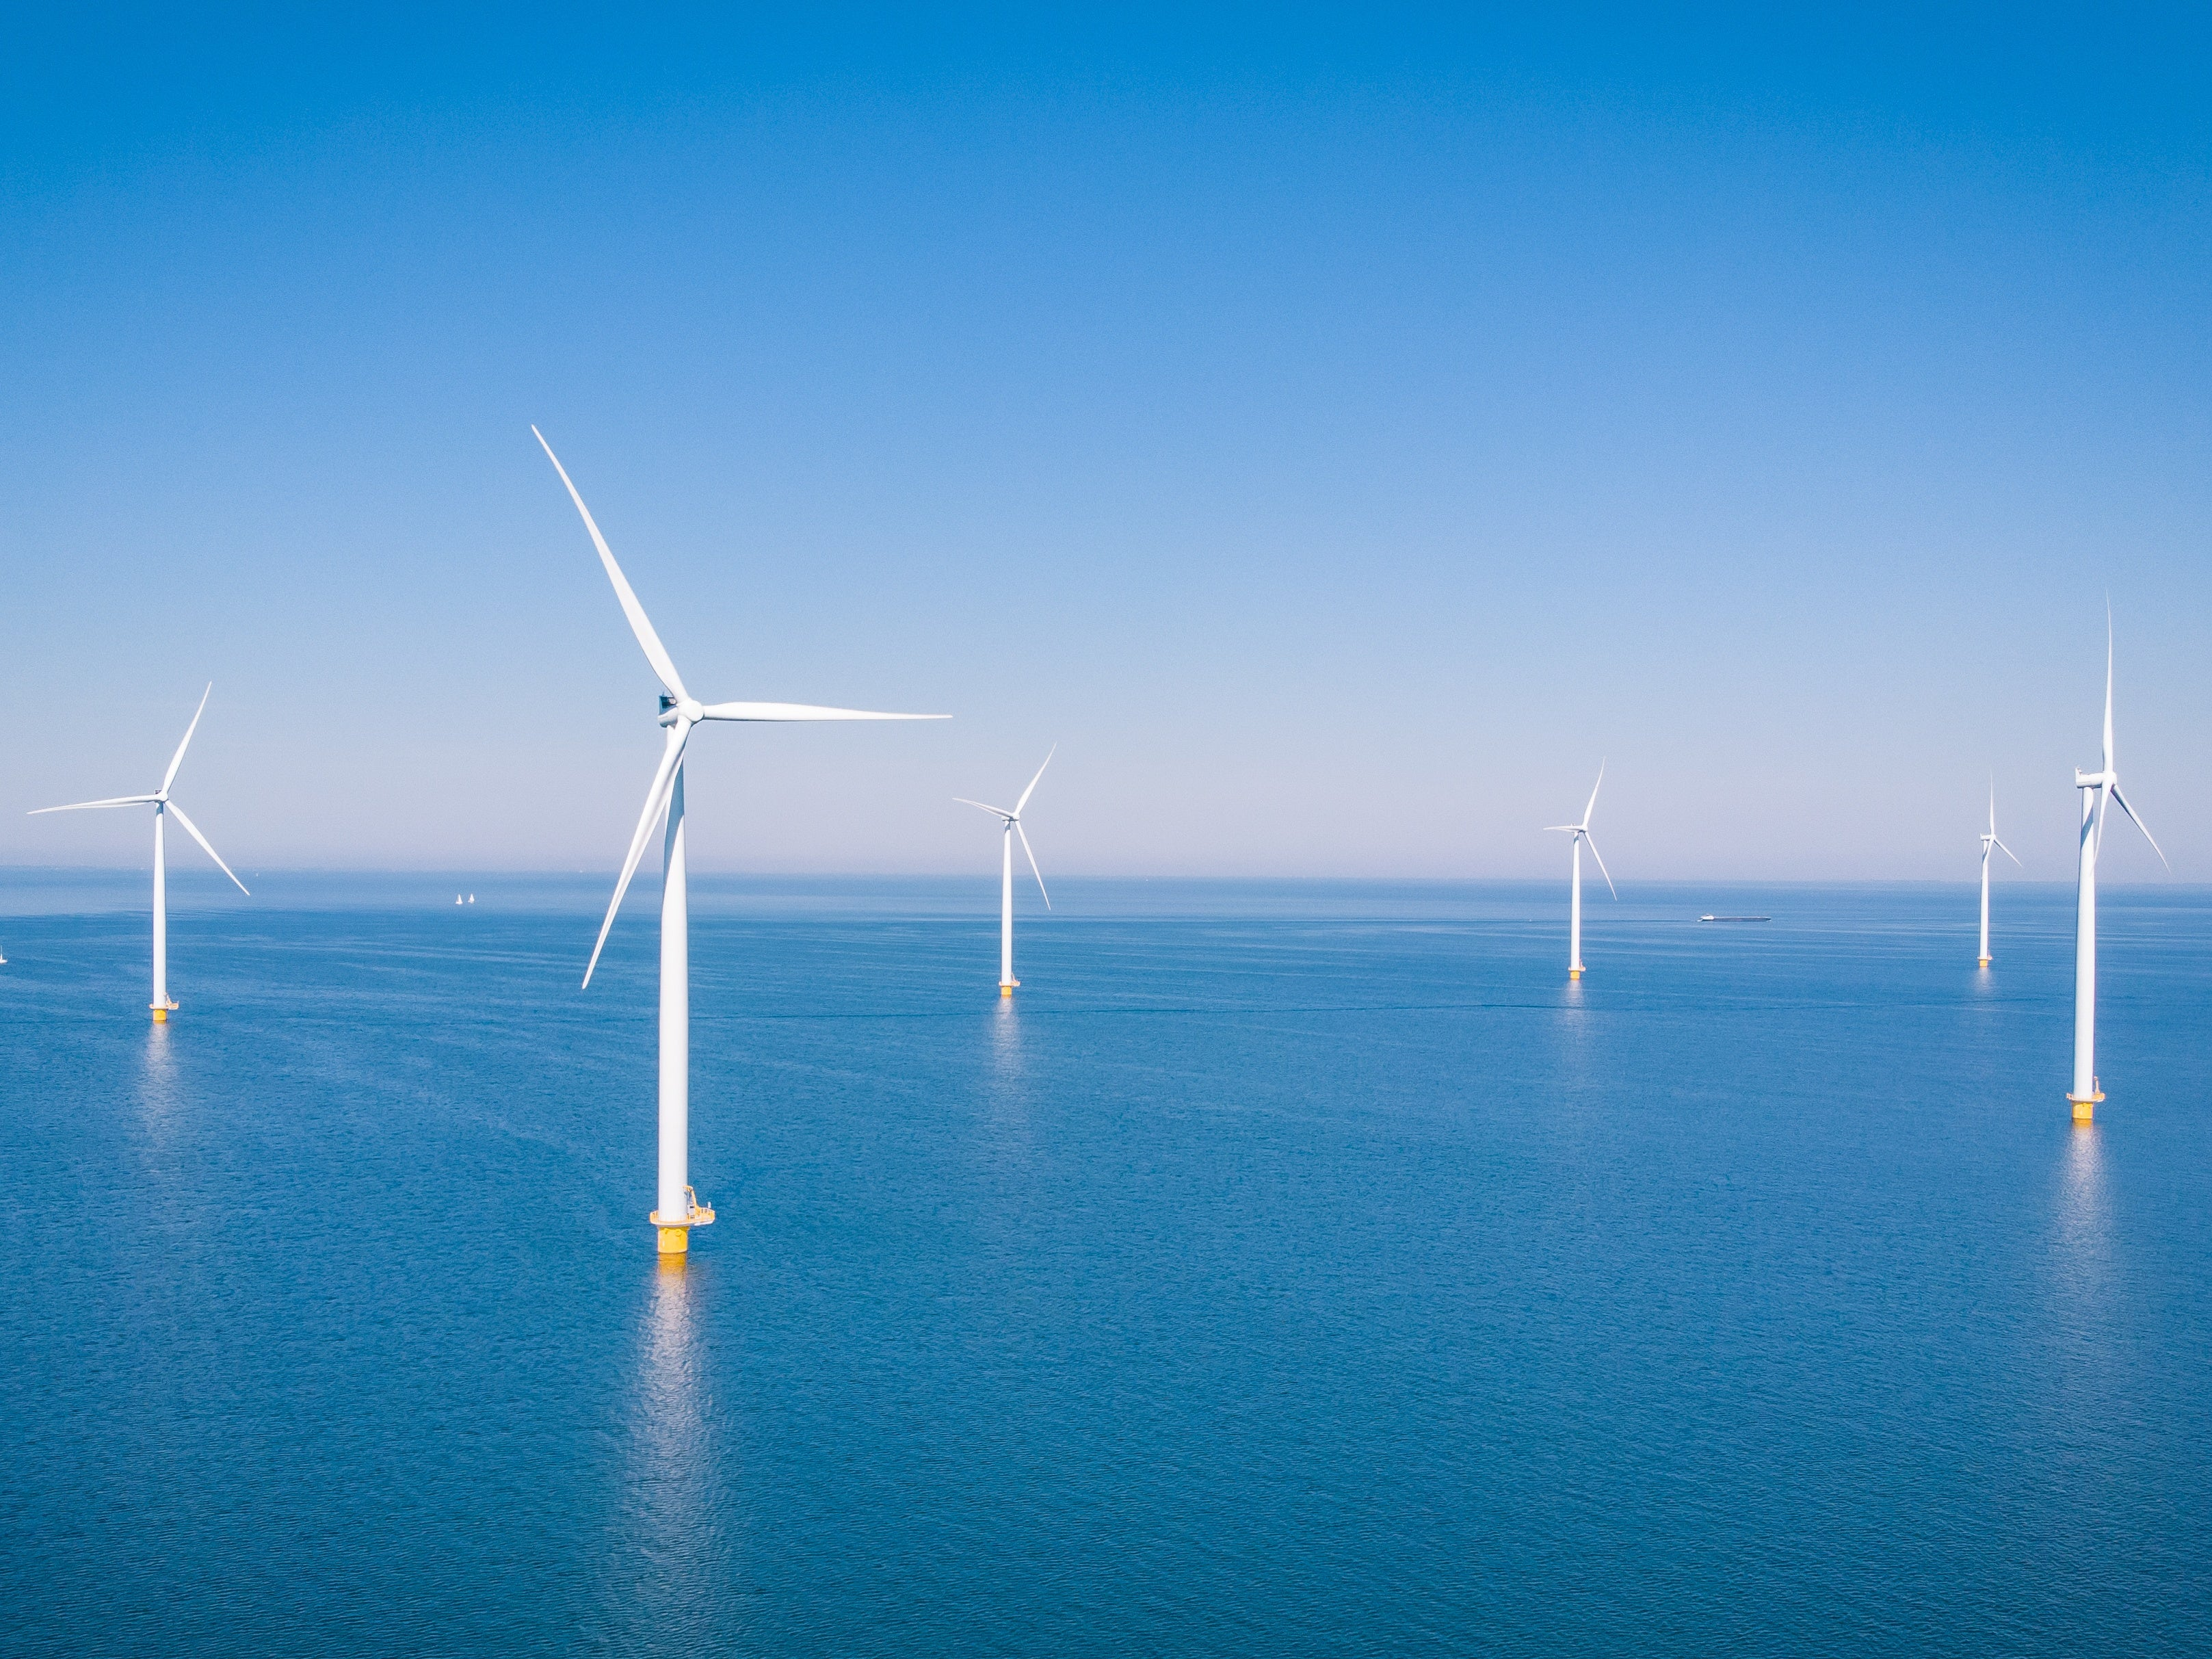 Australia's first offshore wind farm and the proposed regulatory framework